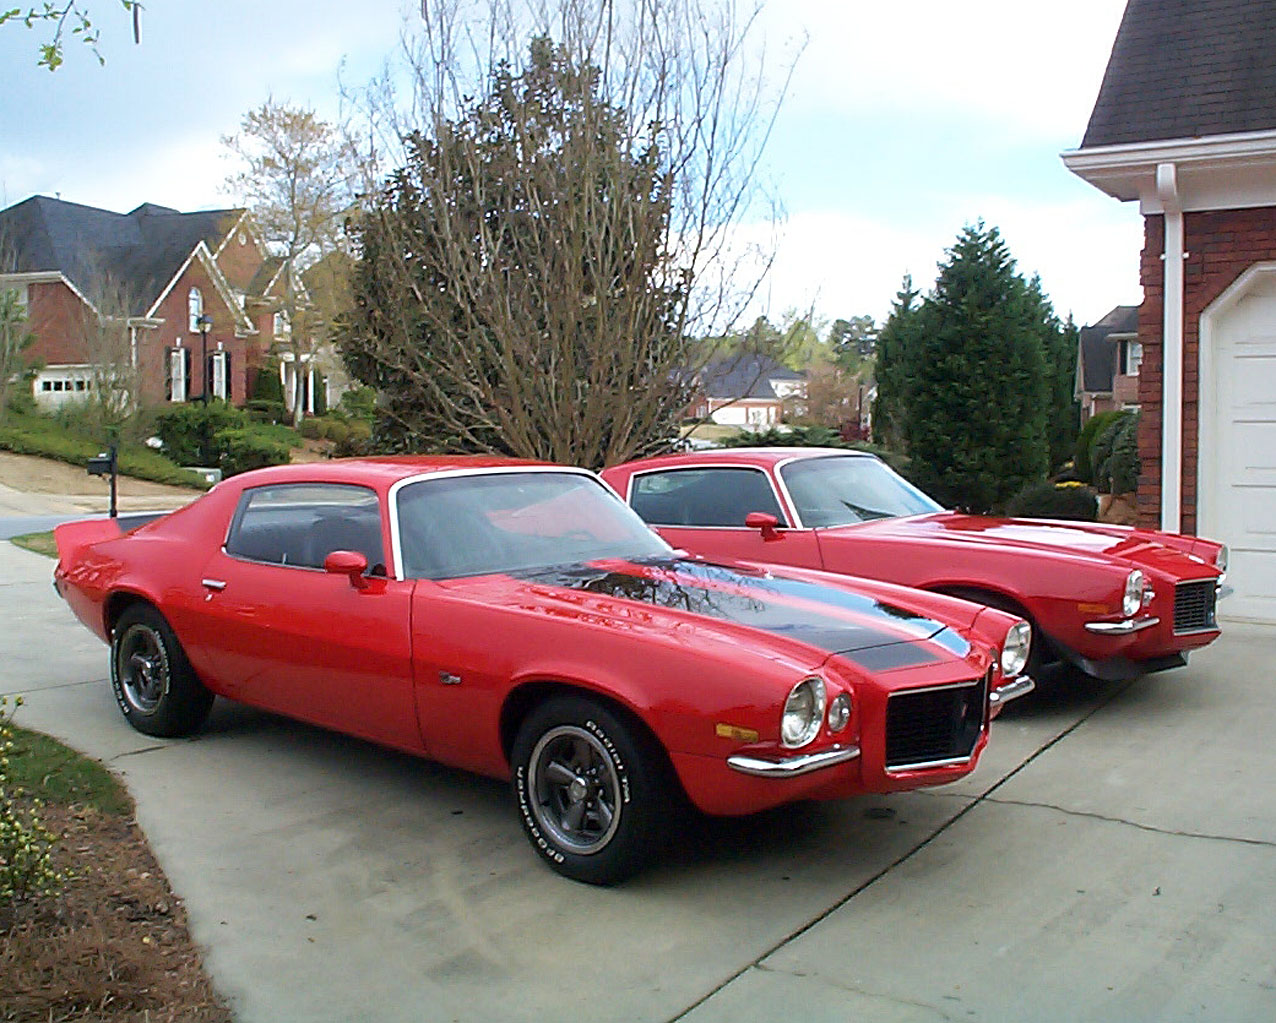 Vernards blog  1973 Camaro Rs May 2011 Readers Rides JPG  May